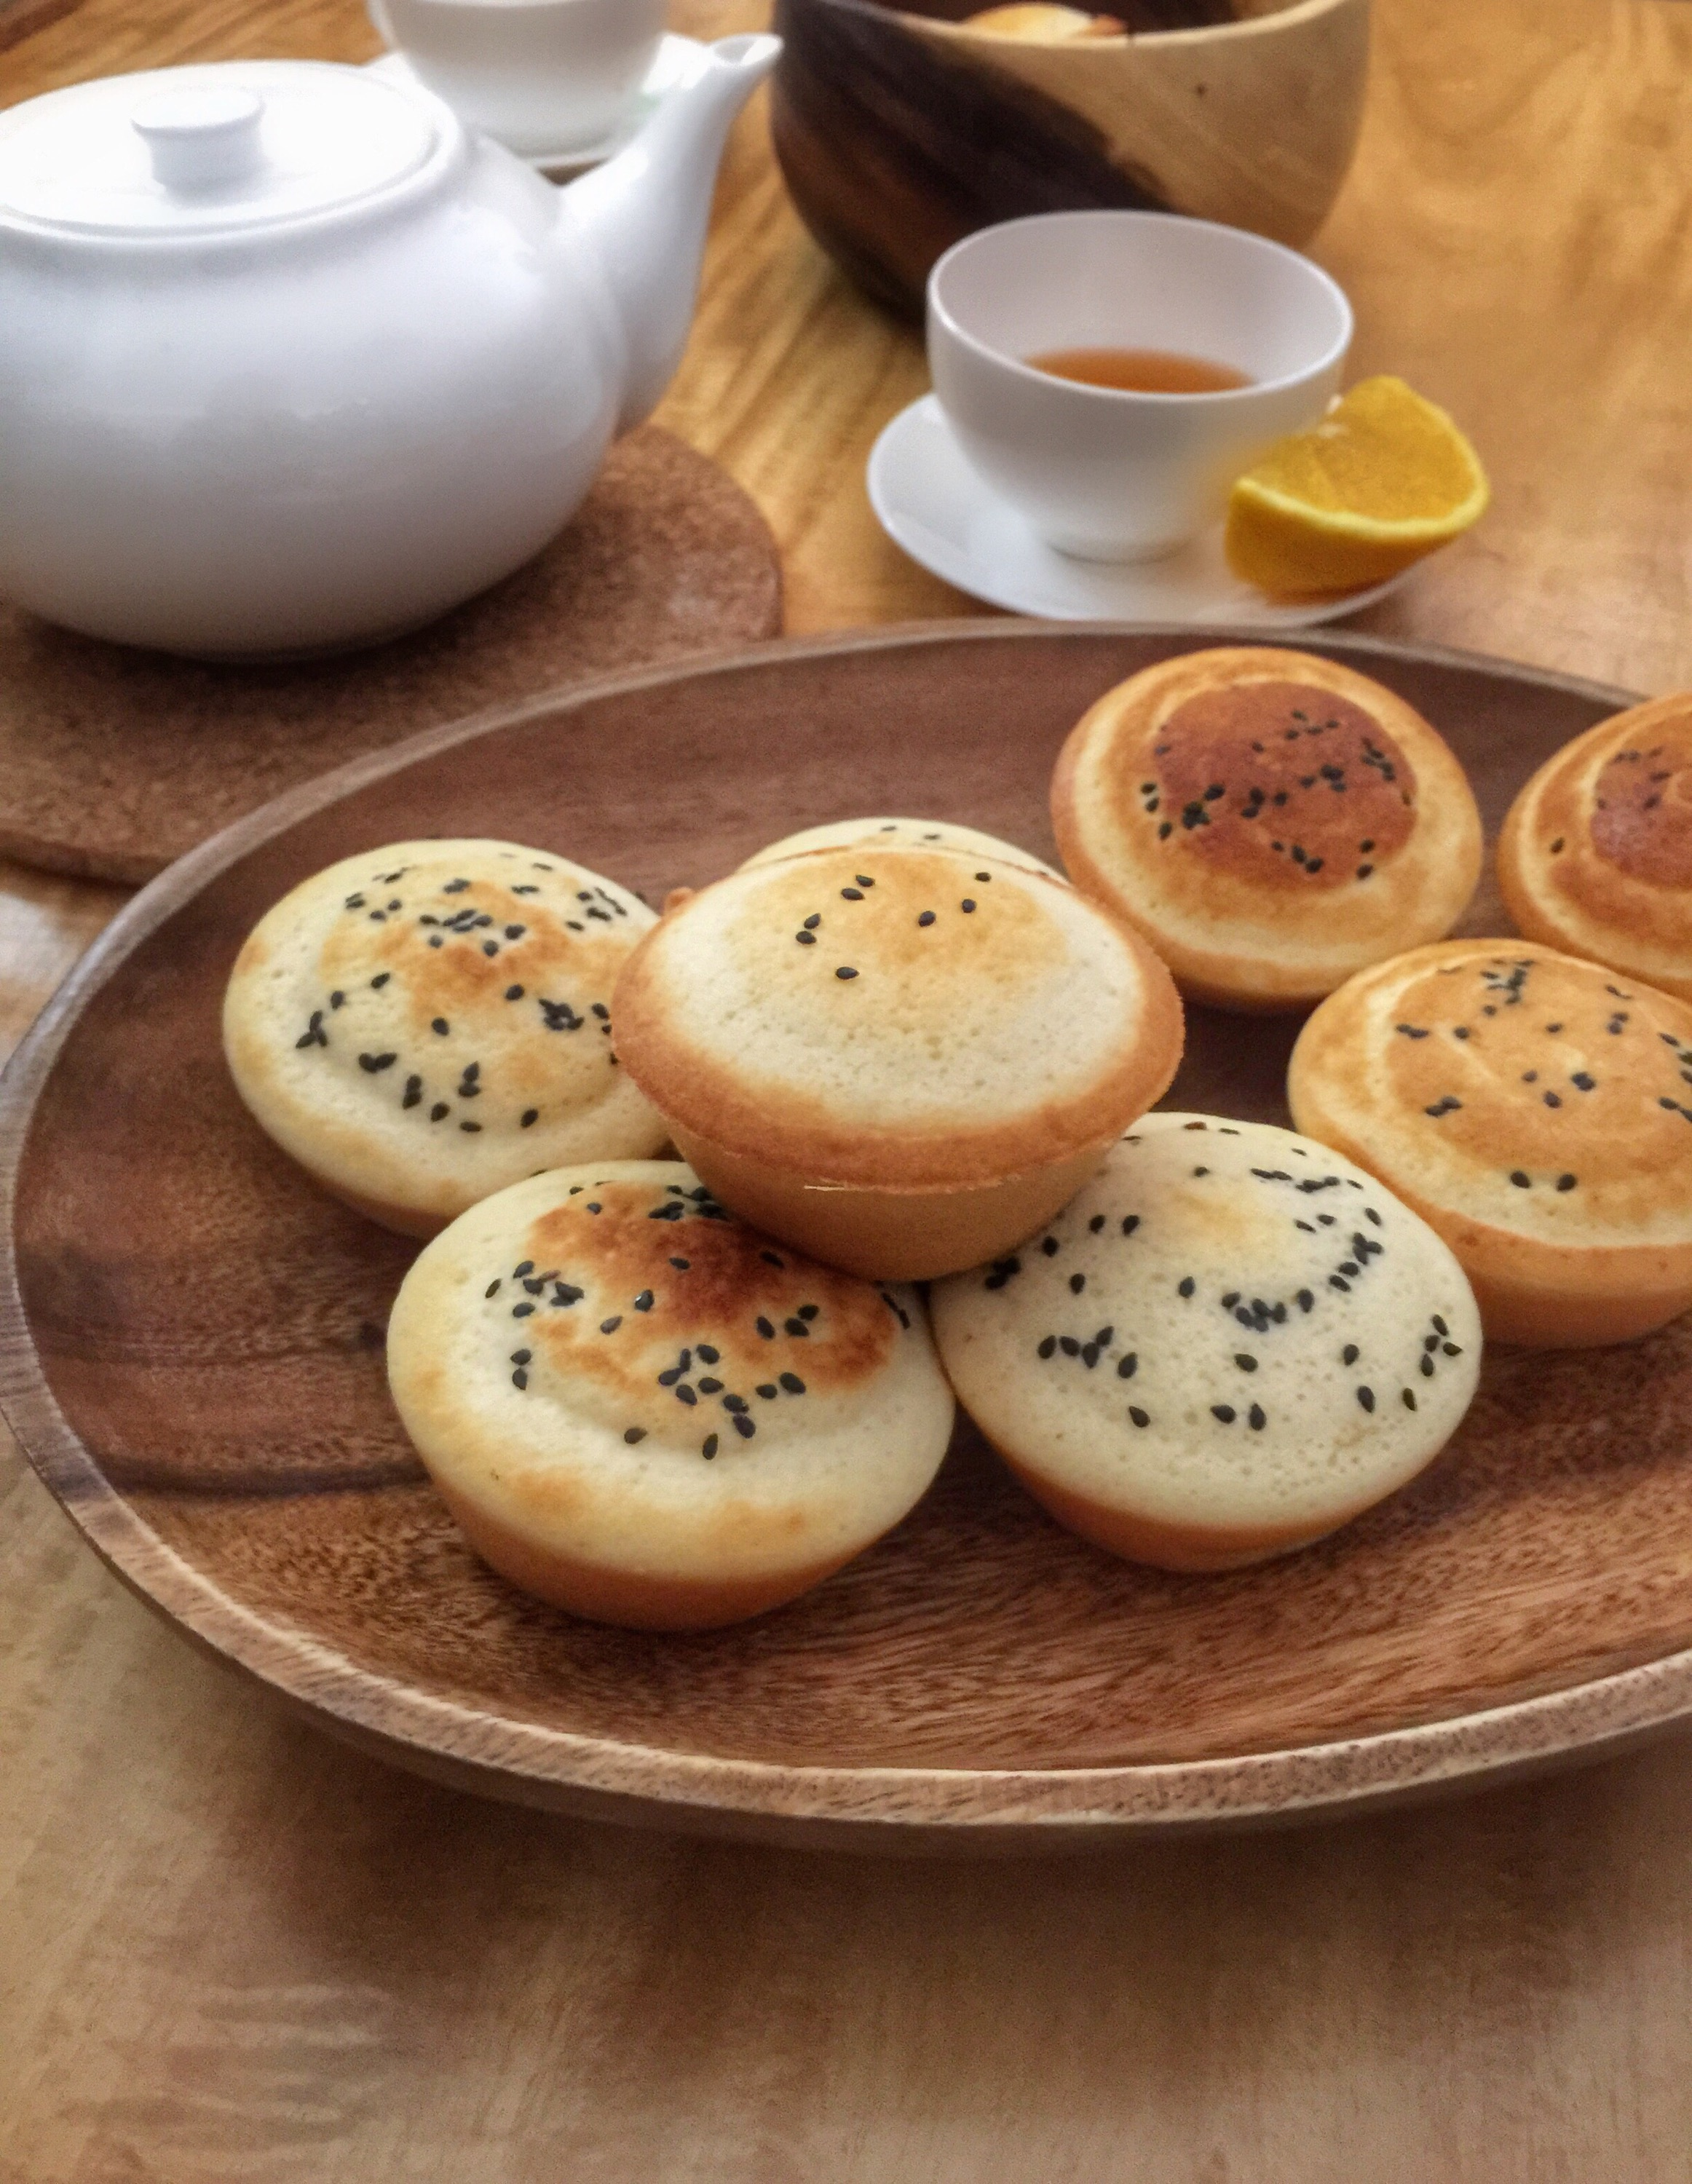 More orange mini mamons with black sesame seeds